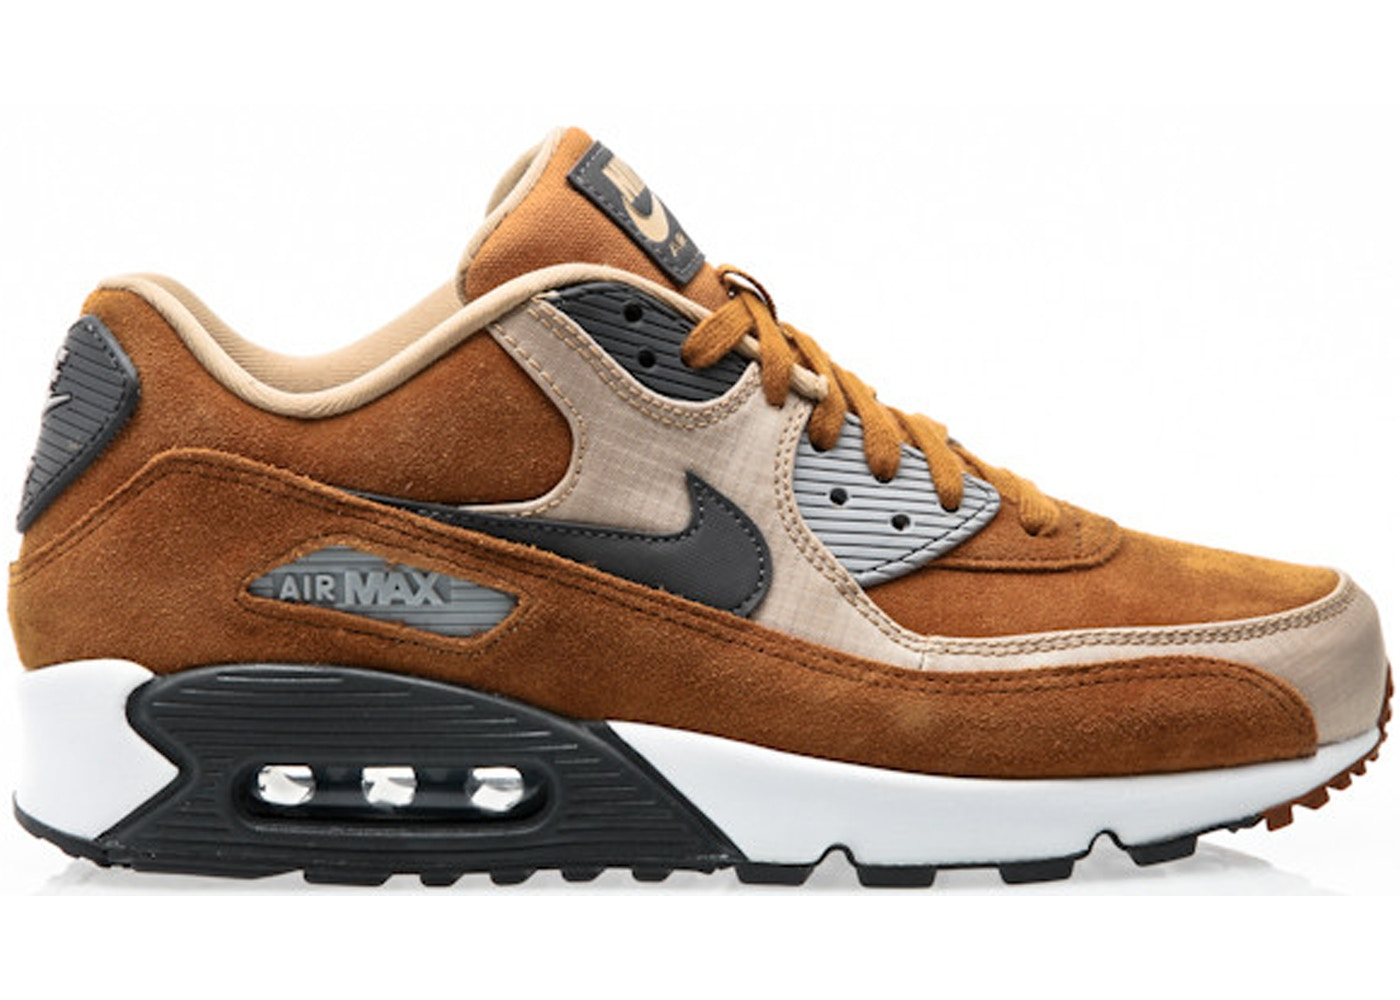 super popular 0abe0 ed935 Air Max 90 Desert Ochre